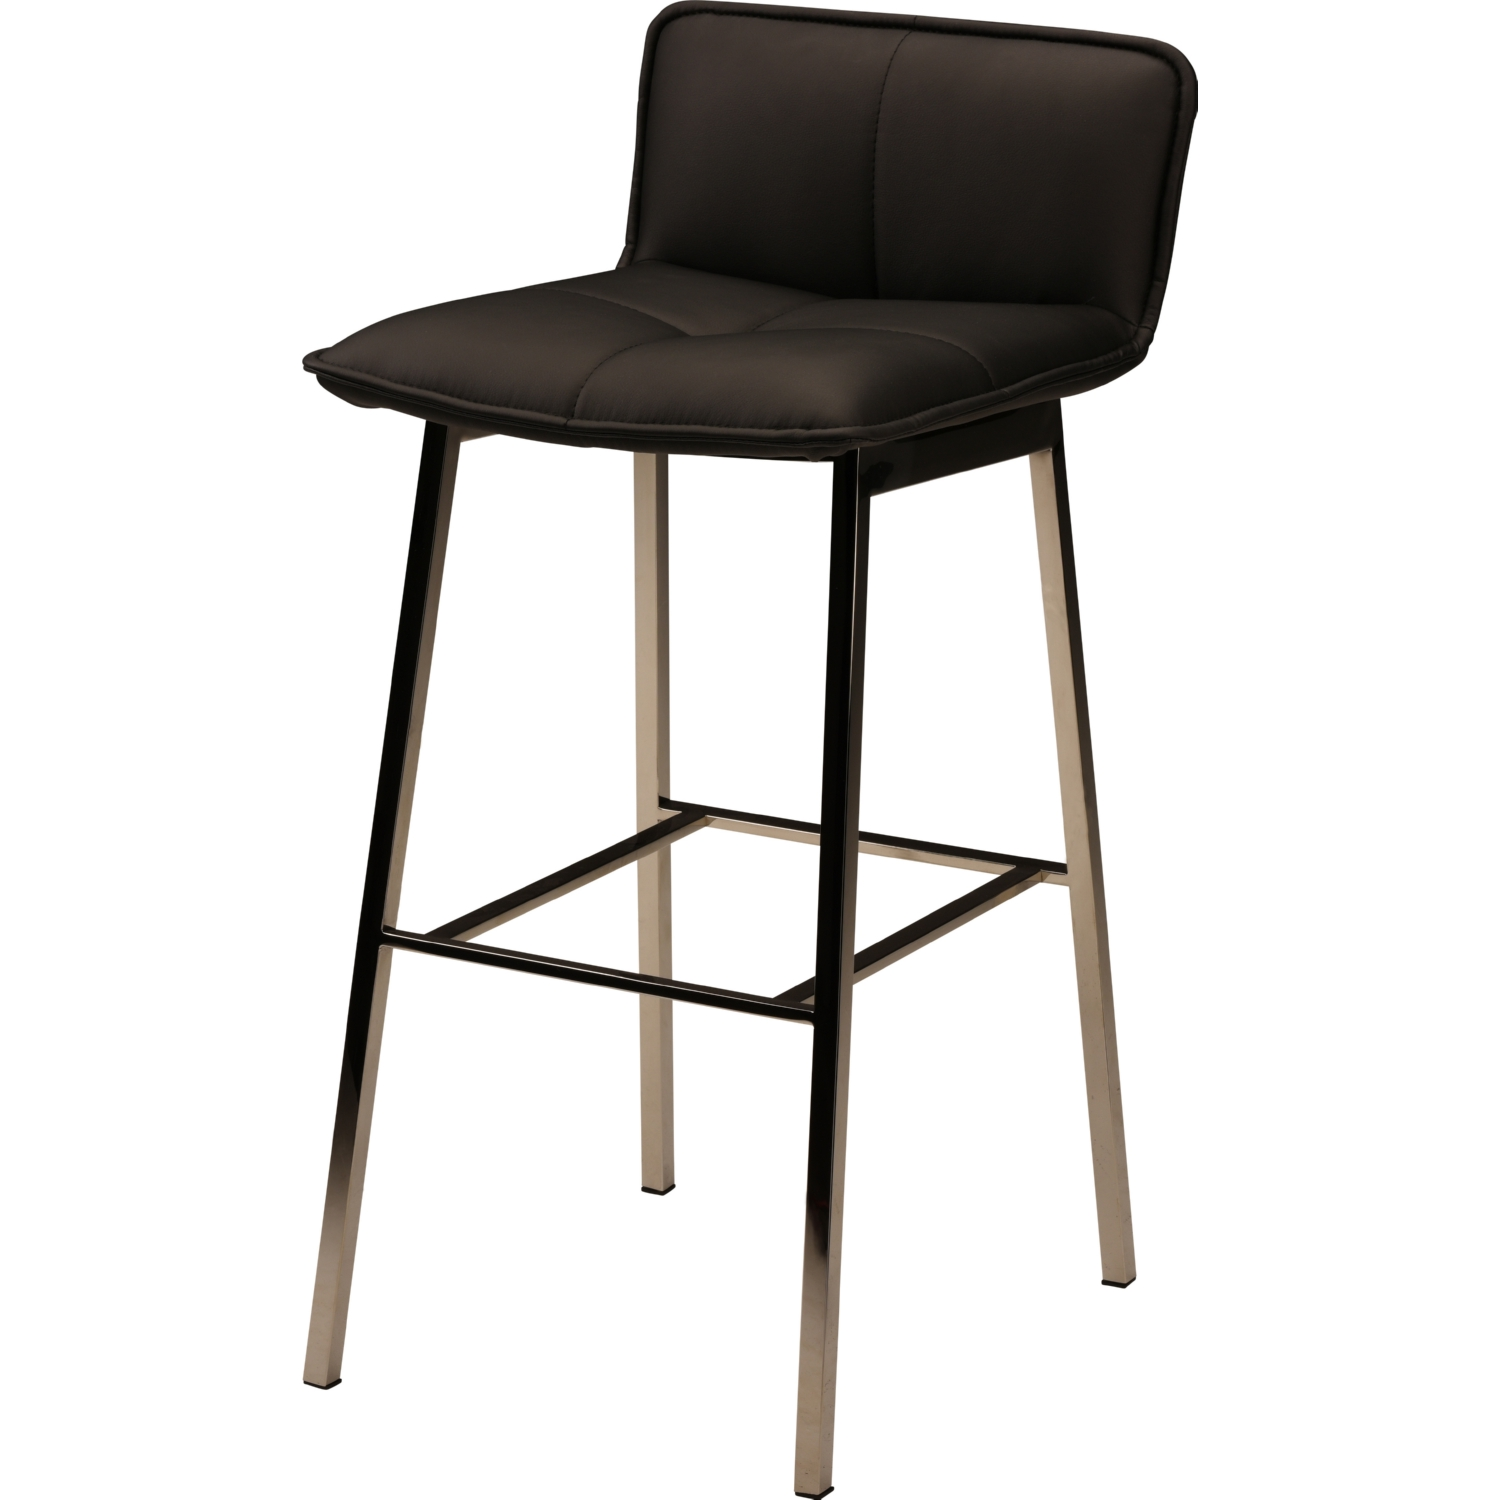 Marvelous Sabrina Counter Stool In Black Naugahyde On Polished Silver Stainless Base By Nuevo Modern Furniture Alphanode Cool Chair Designs And Ideas Alphanodeonline